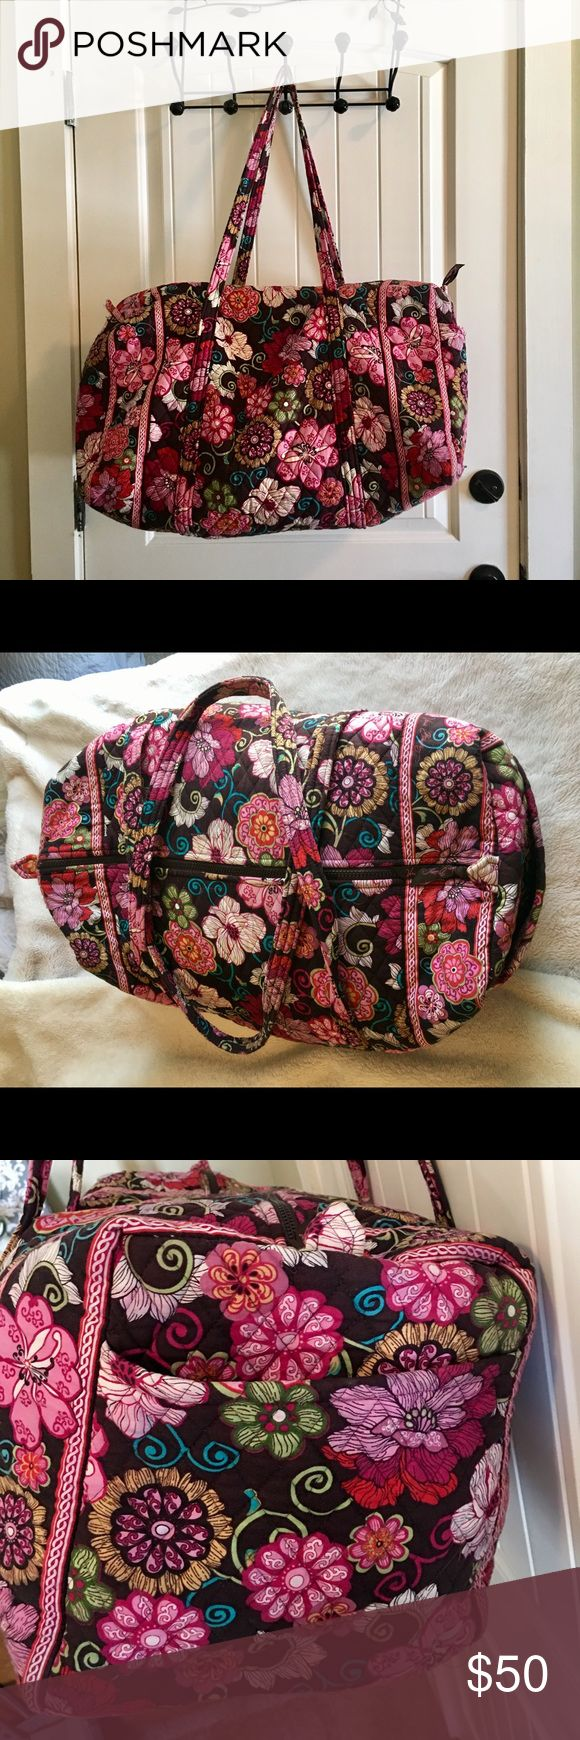 Vera Bradley Large Duffel Travel Bag Vera Bradley Large Duffel Travel Bag in Mod Floral Pink print. Perfect bag for going on trips or just for the weekend. Vera Bradley Bags Travel Bags